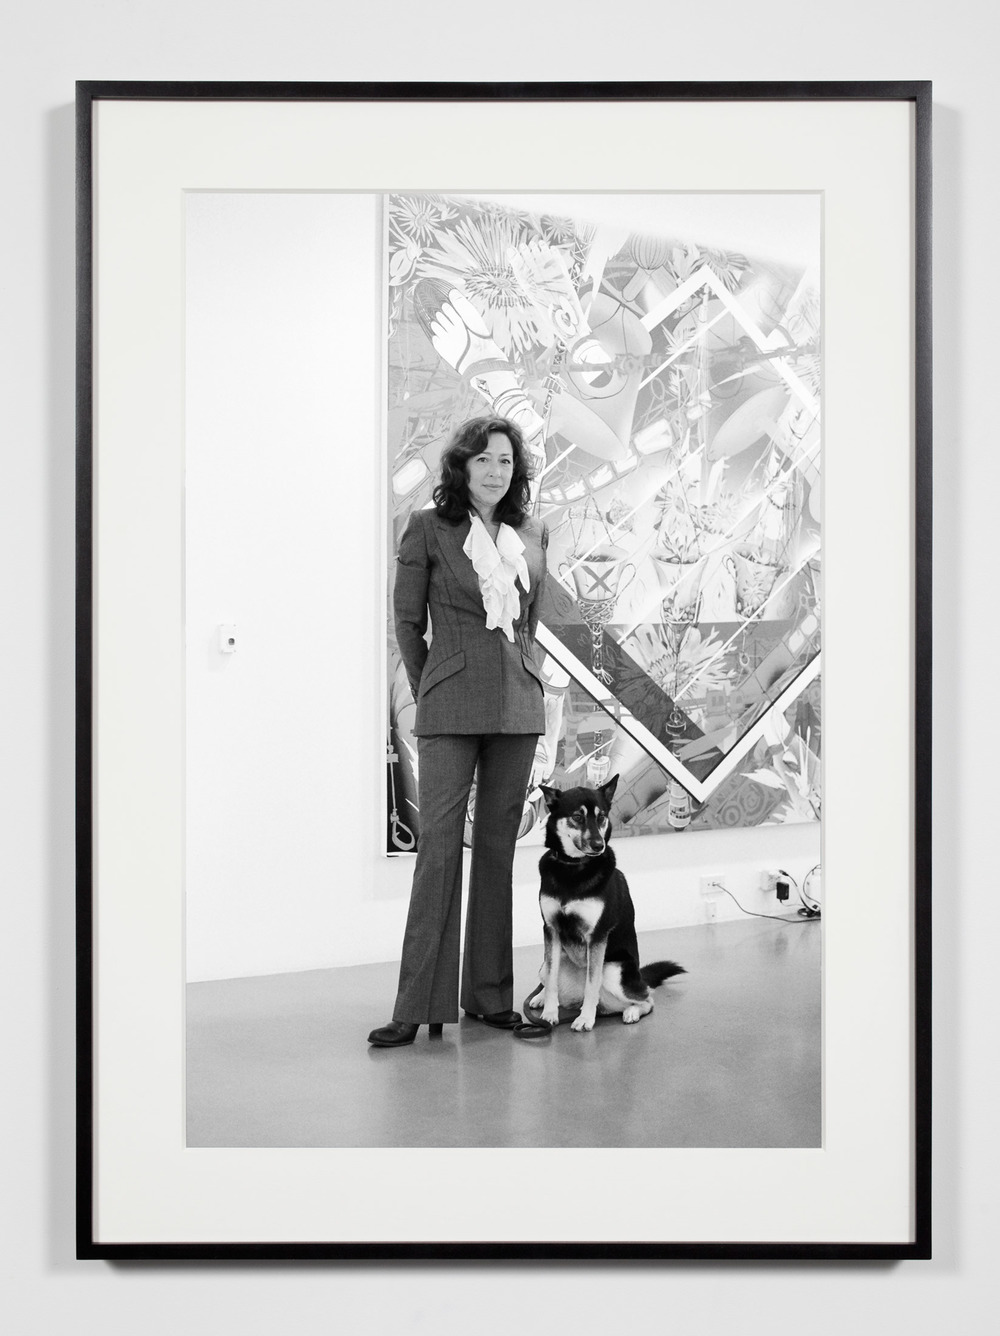 Gallery President, Los Angeles, California, December 7, 2010    2011   Epson Ultrachrome K3 archival ink jet print on Hahnemühle Photo Rag paper  36 3/8 x 26 3/8 inches   Industrial Portraits, 2008–